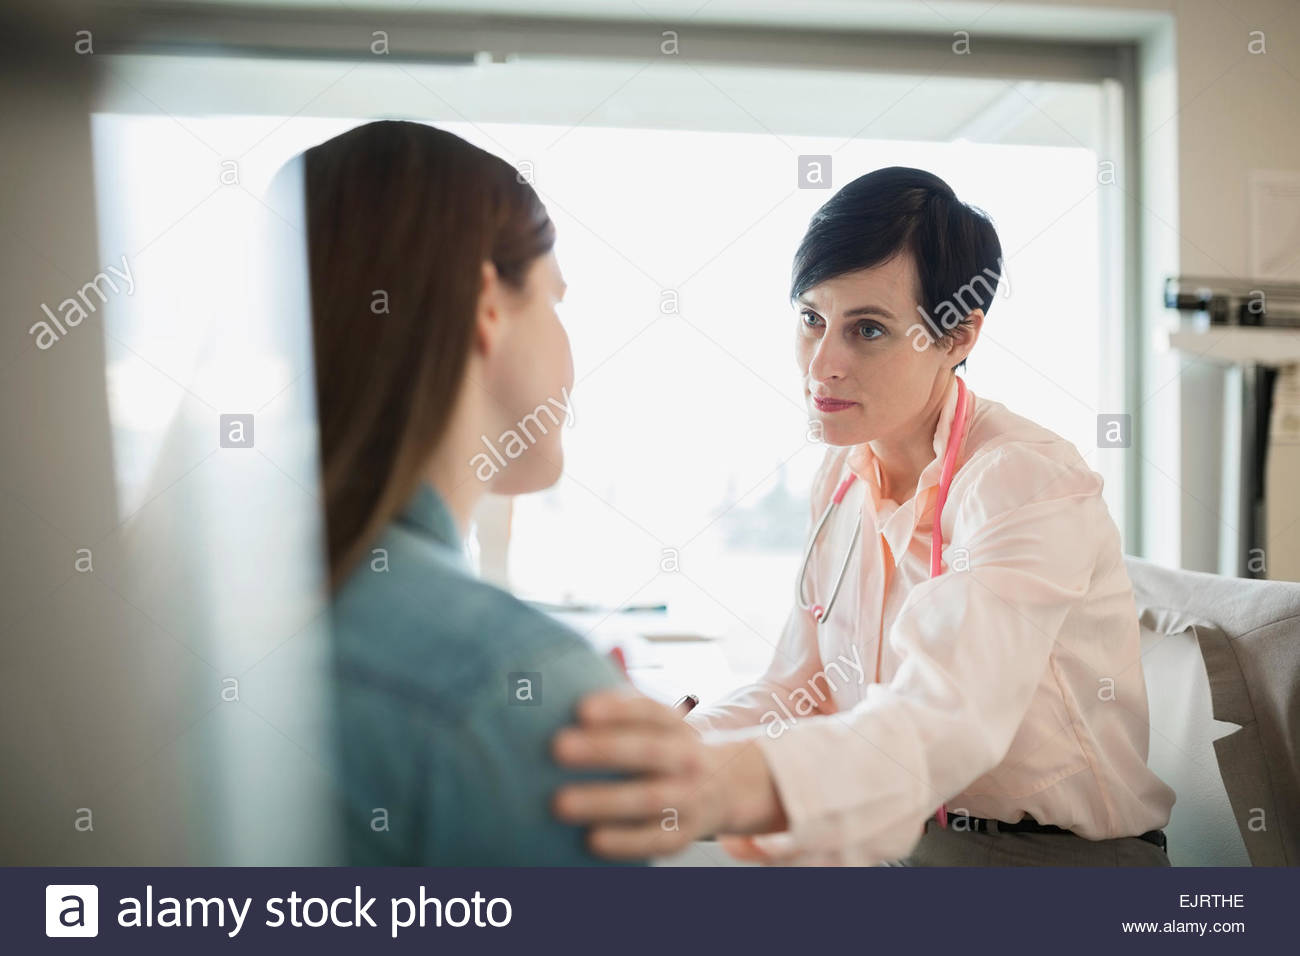 Caring doctor consoling patient in clinic office - Stock Image